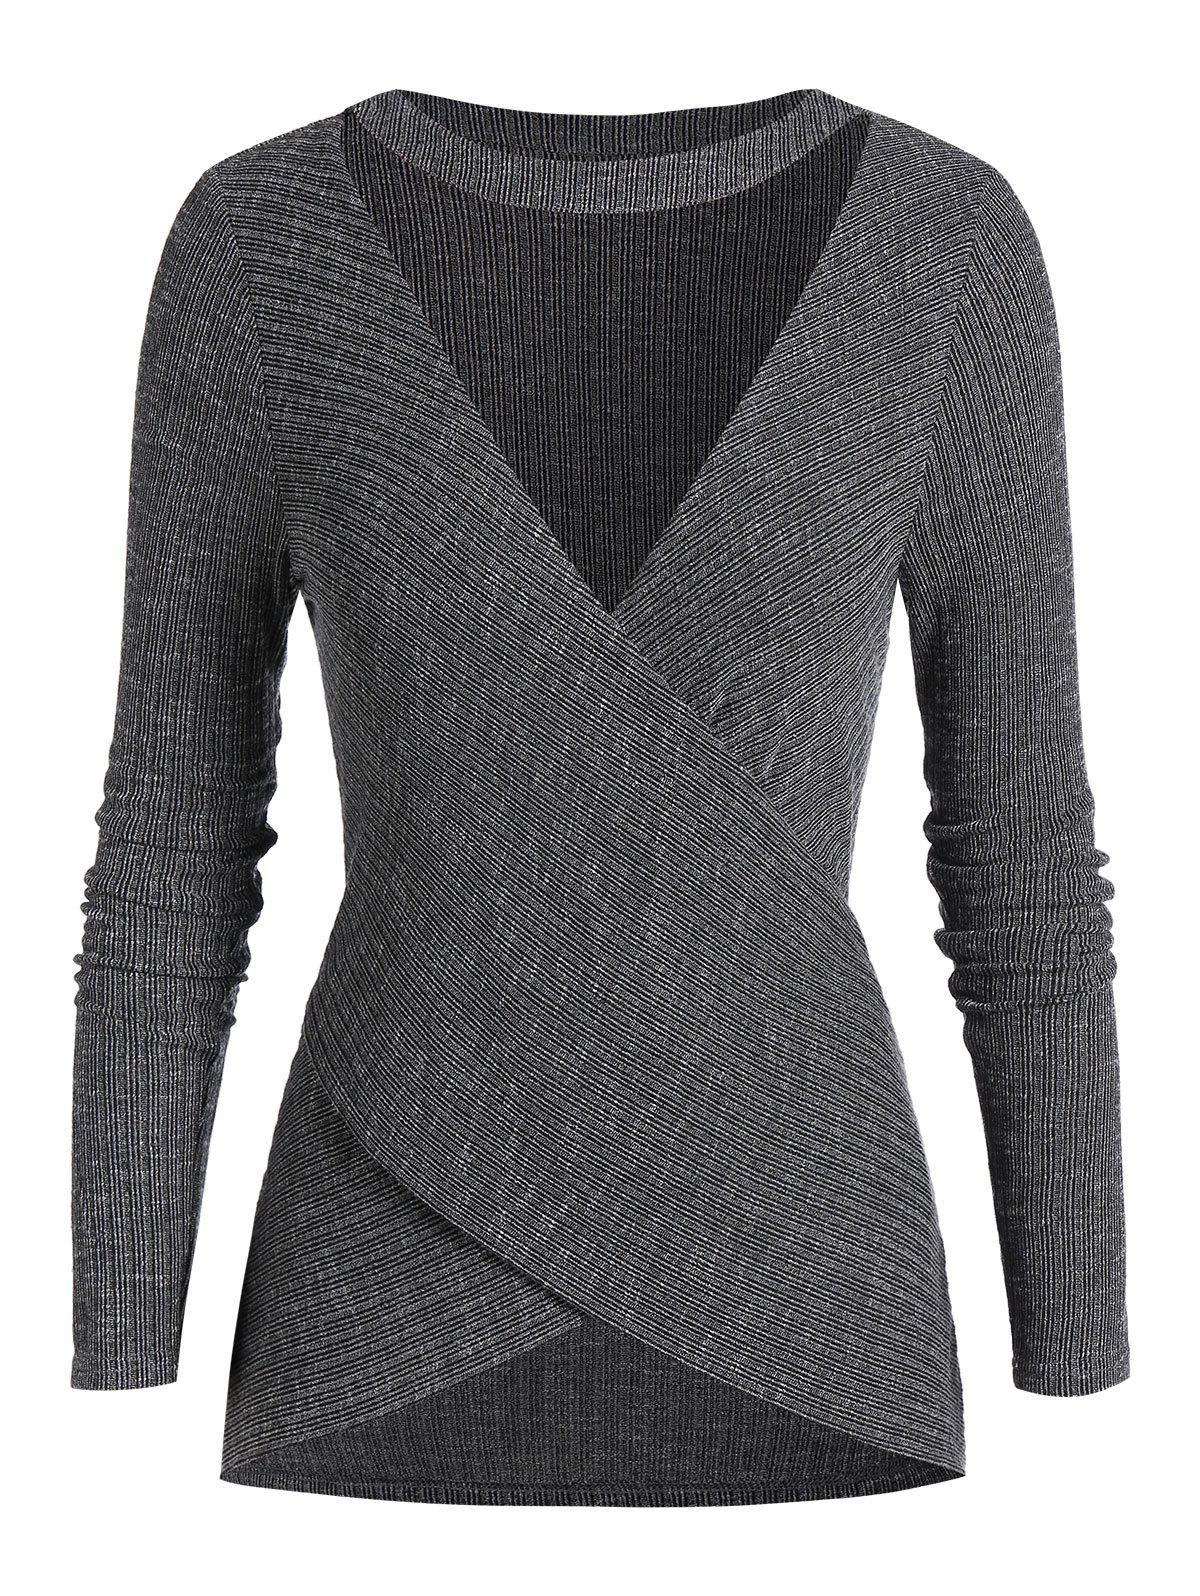 Plus Size Choker Cut Out Crossover Long Sleeve Knitwear - DARK SLATE GREY 5X